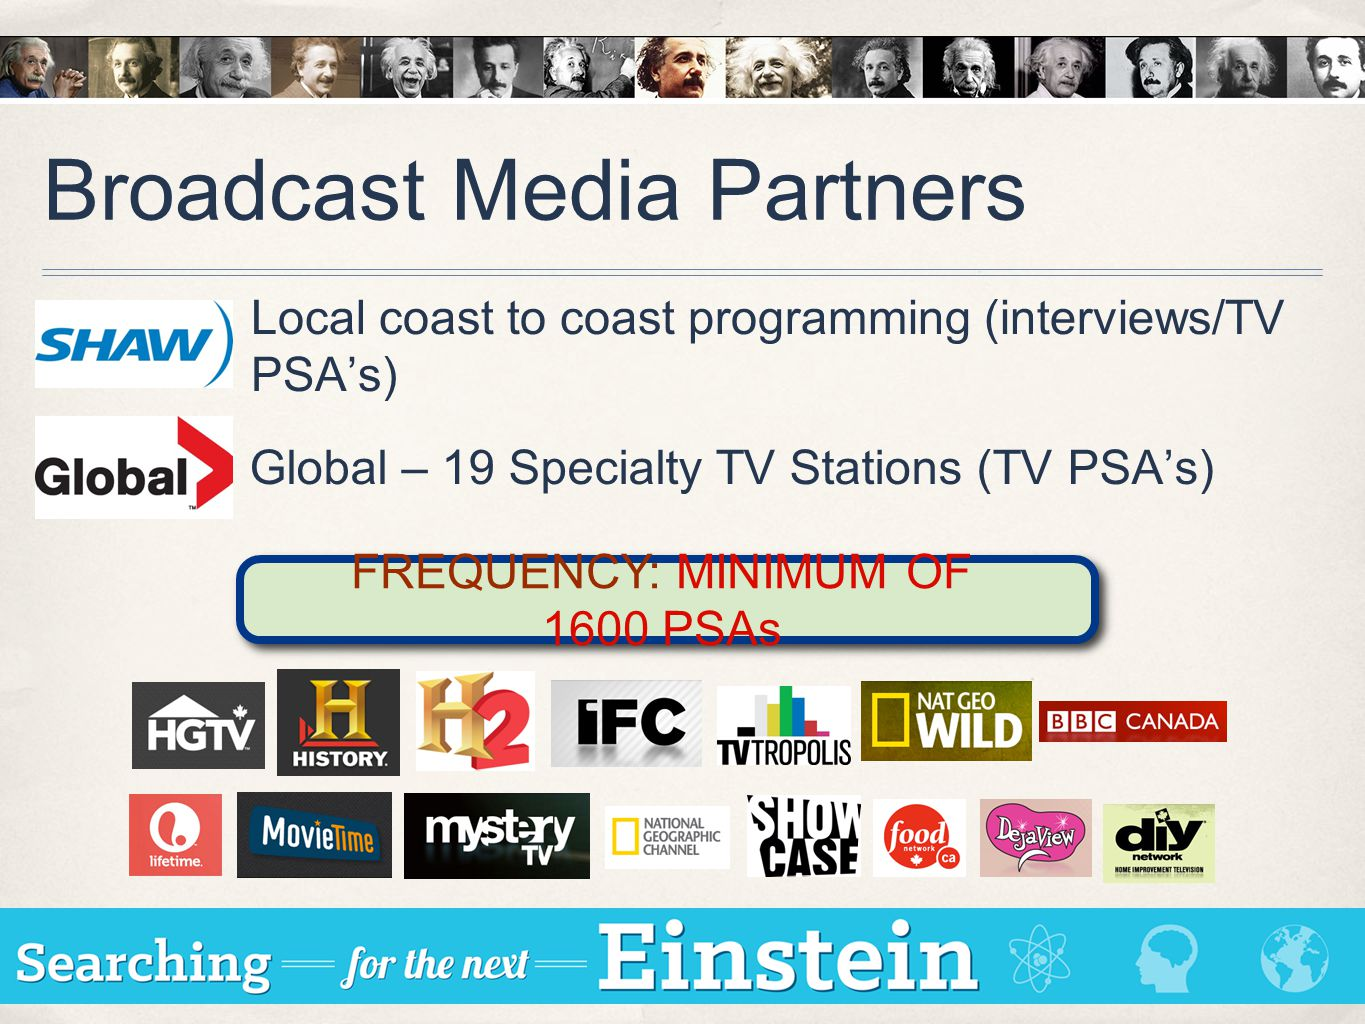 Broadcast Media Partners Local coast to coast programming (interviews/TV PSA's) FREQUENCY: MINIMUM OF 1600 PSAs Global – 19 Specialty TV Stations (TV